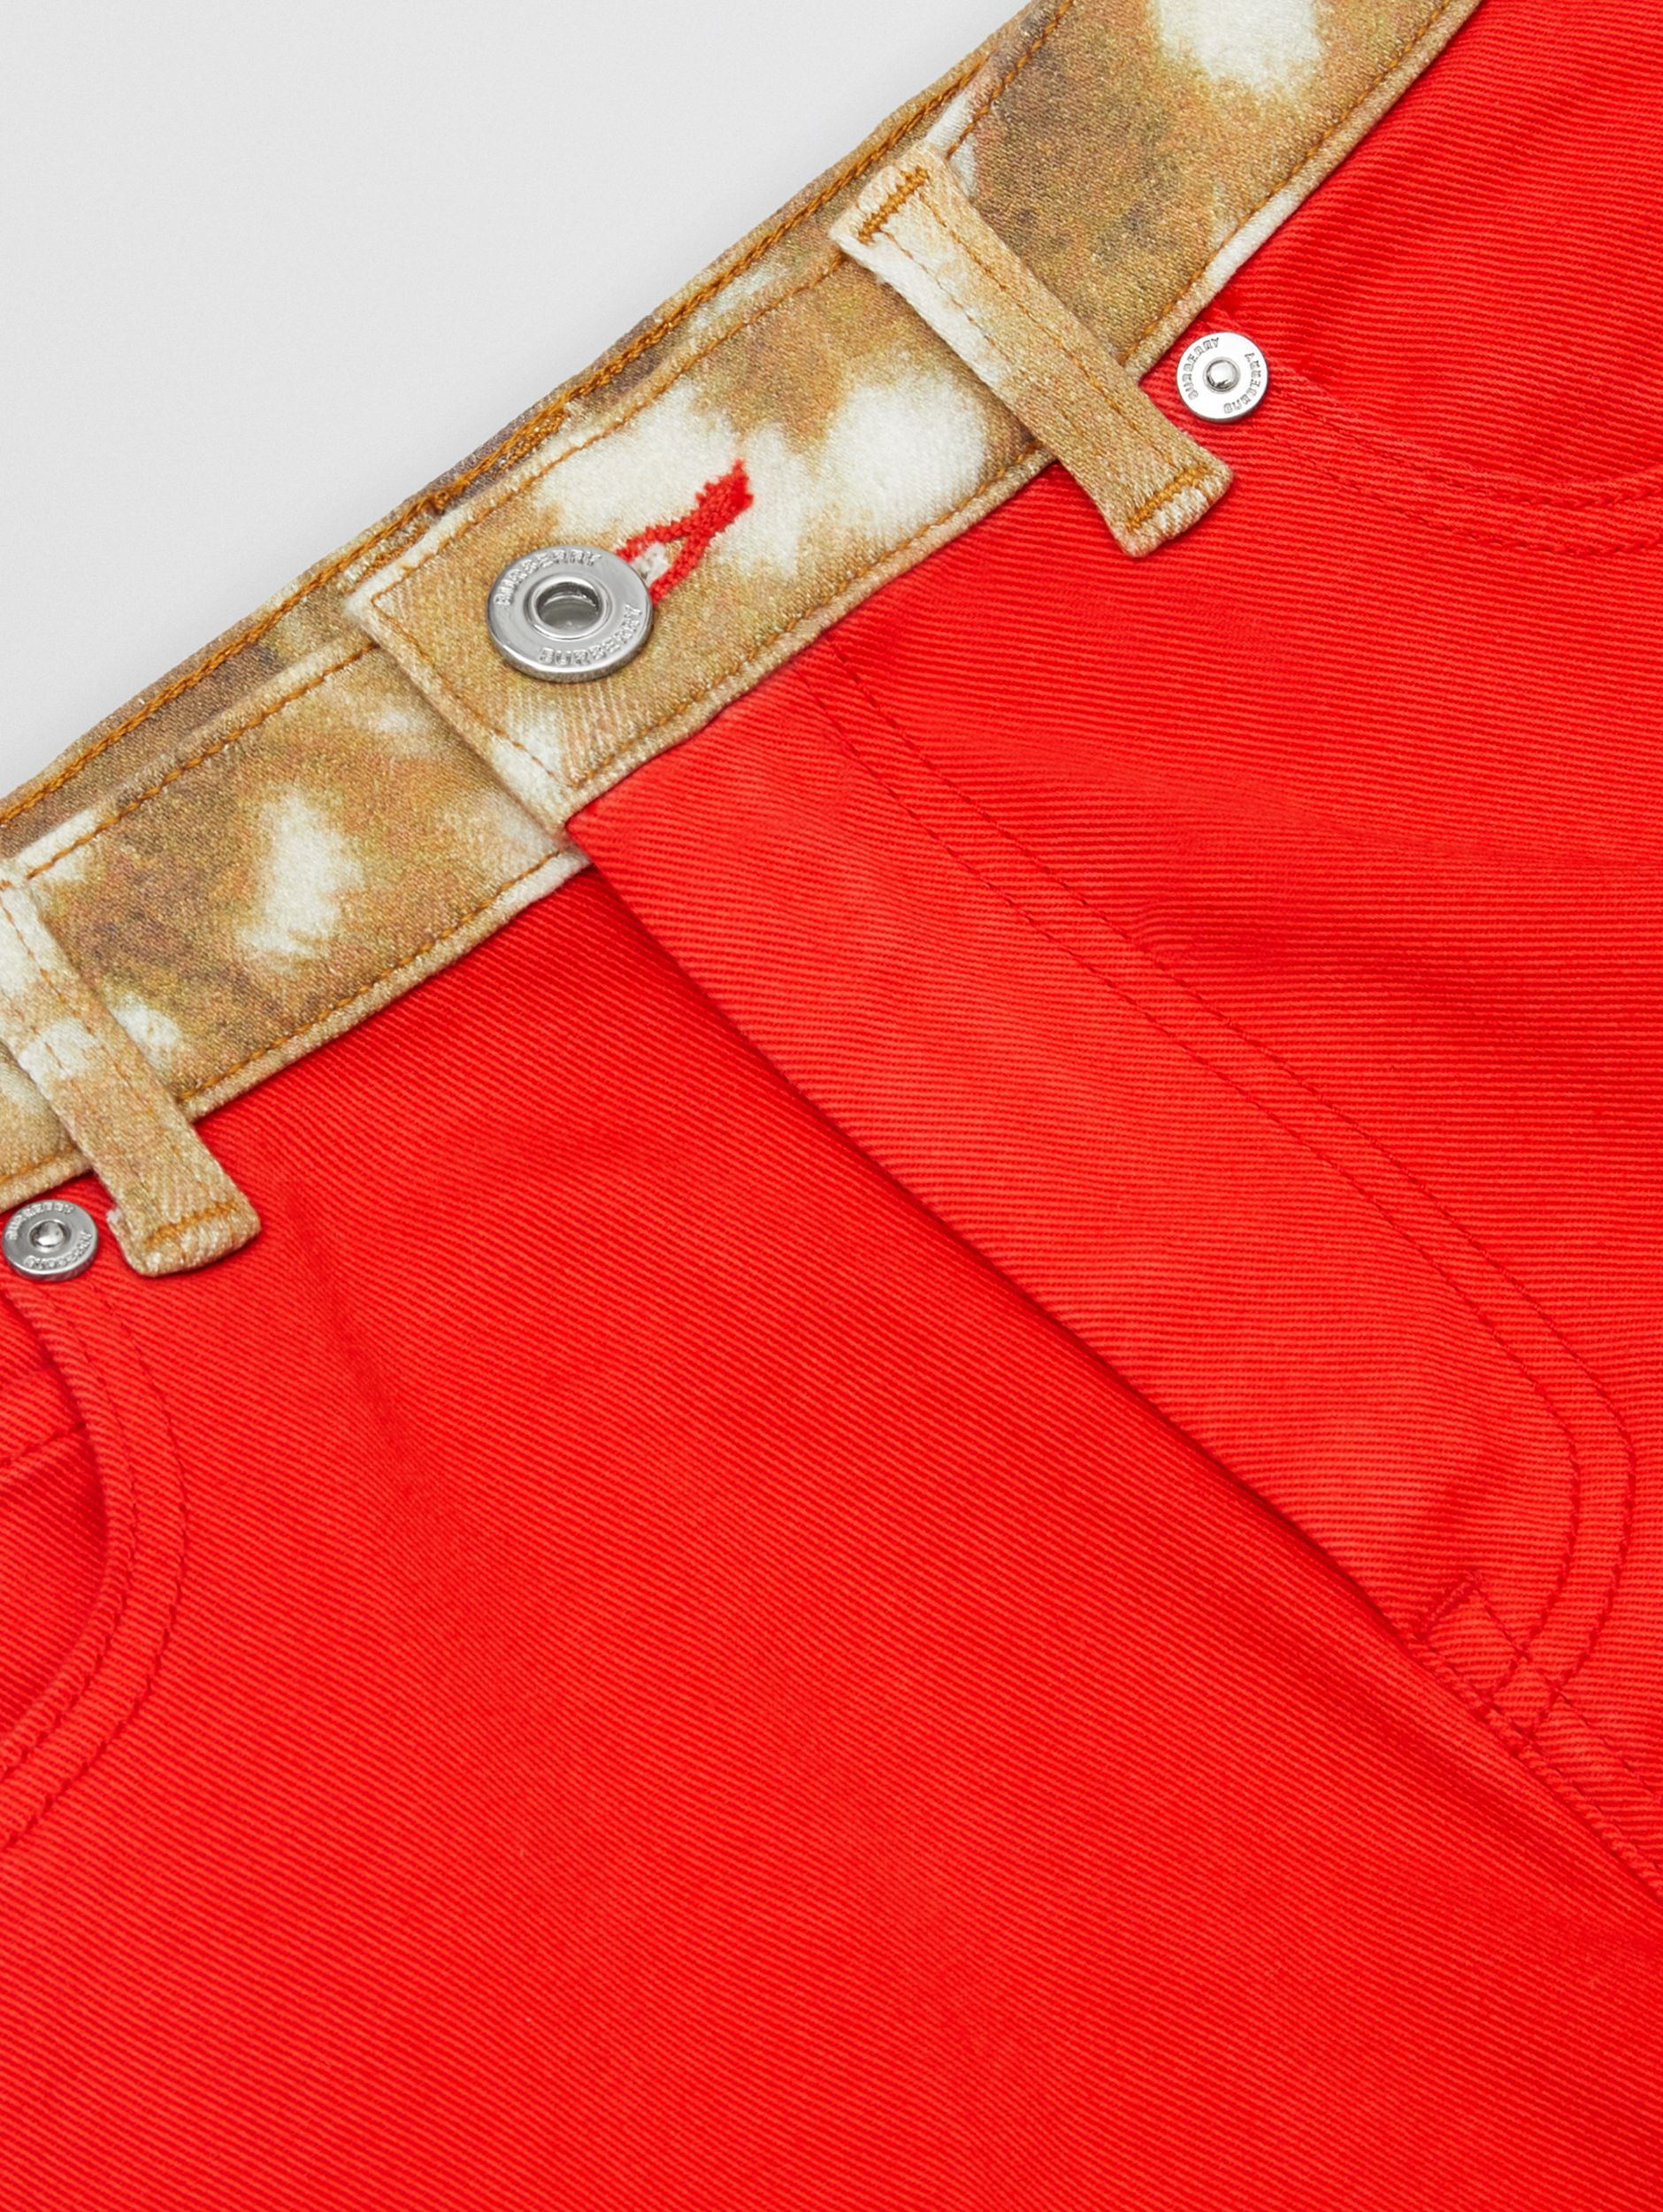 Flared Fit Deer Print Trim Japanese Denim Jeans in Bright Red | Burberry - 2